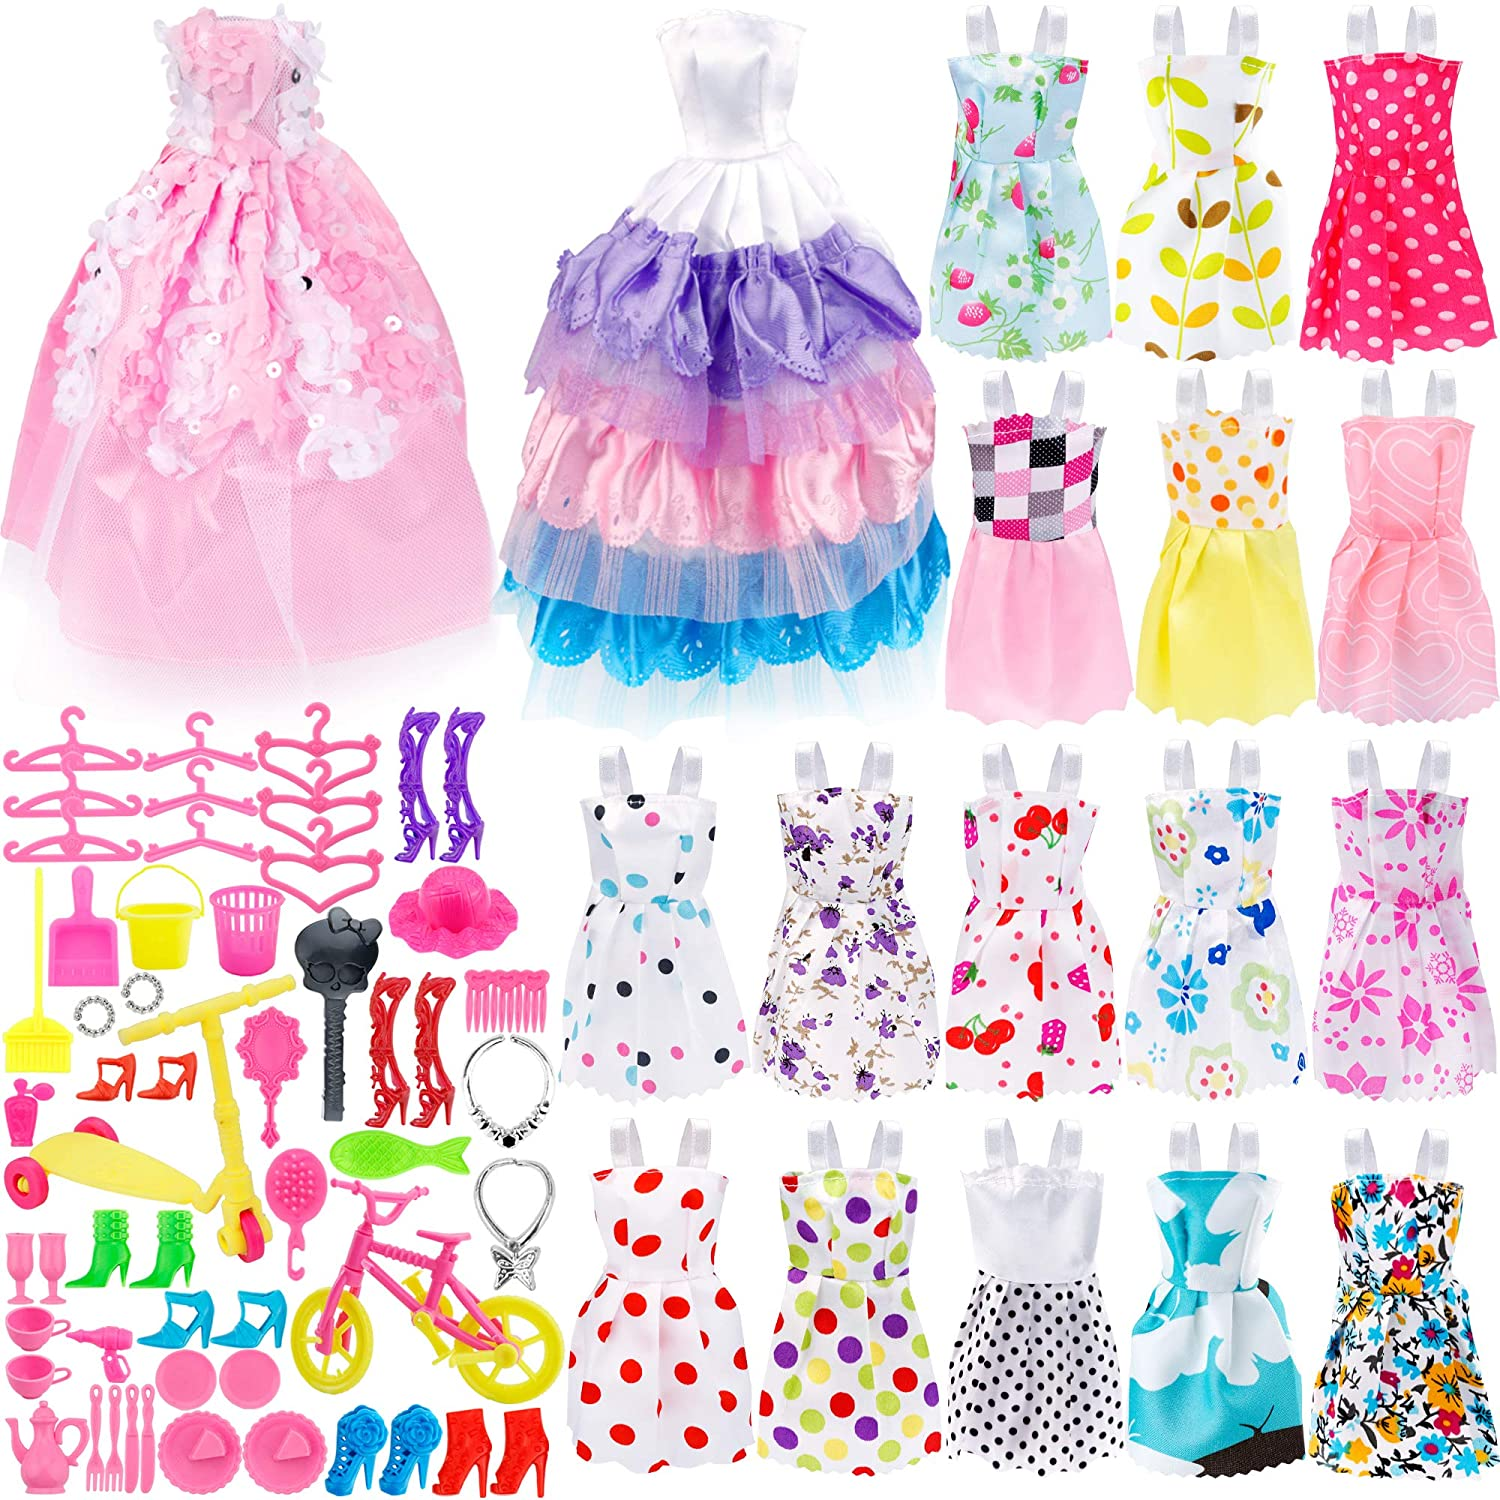 ONEONEY 73Pcs Dolls Fashion Set Barbie Included 18Pcs Wedding Party Outfits Clothes 55Pcs Doll Accessories Shoes Bags Necklace Girls' Gifts JANYUN